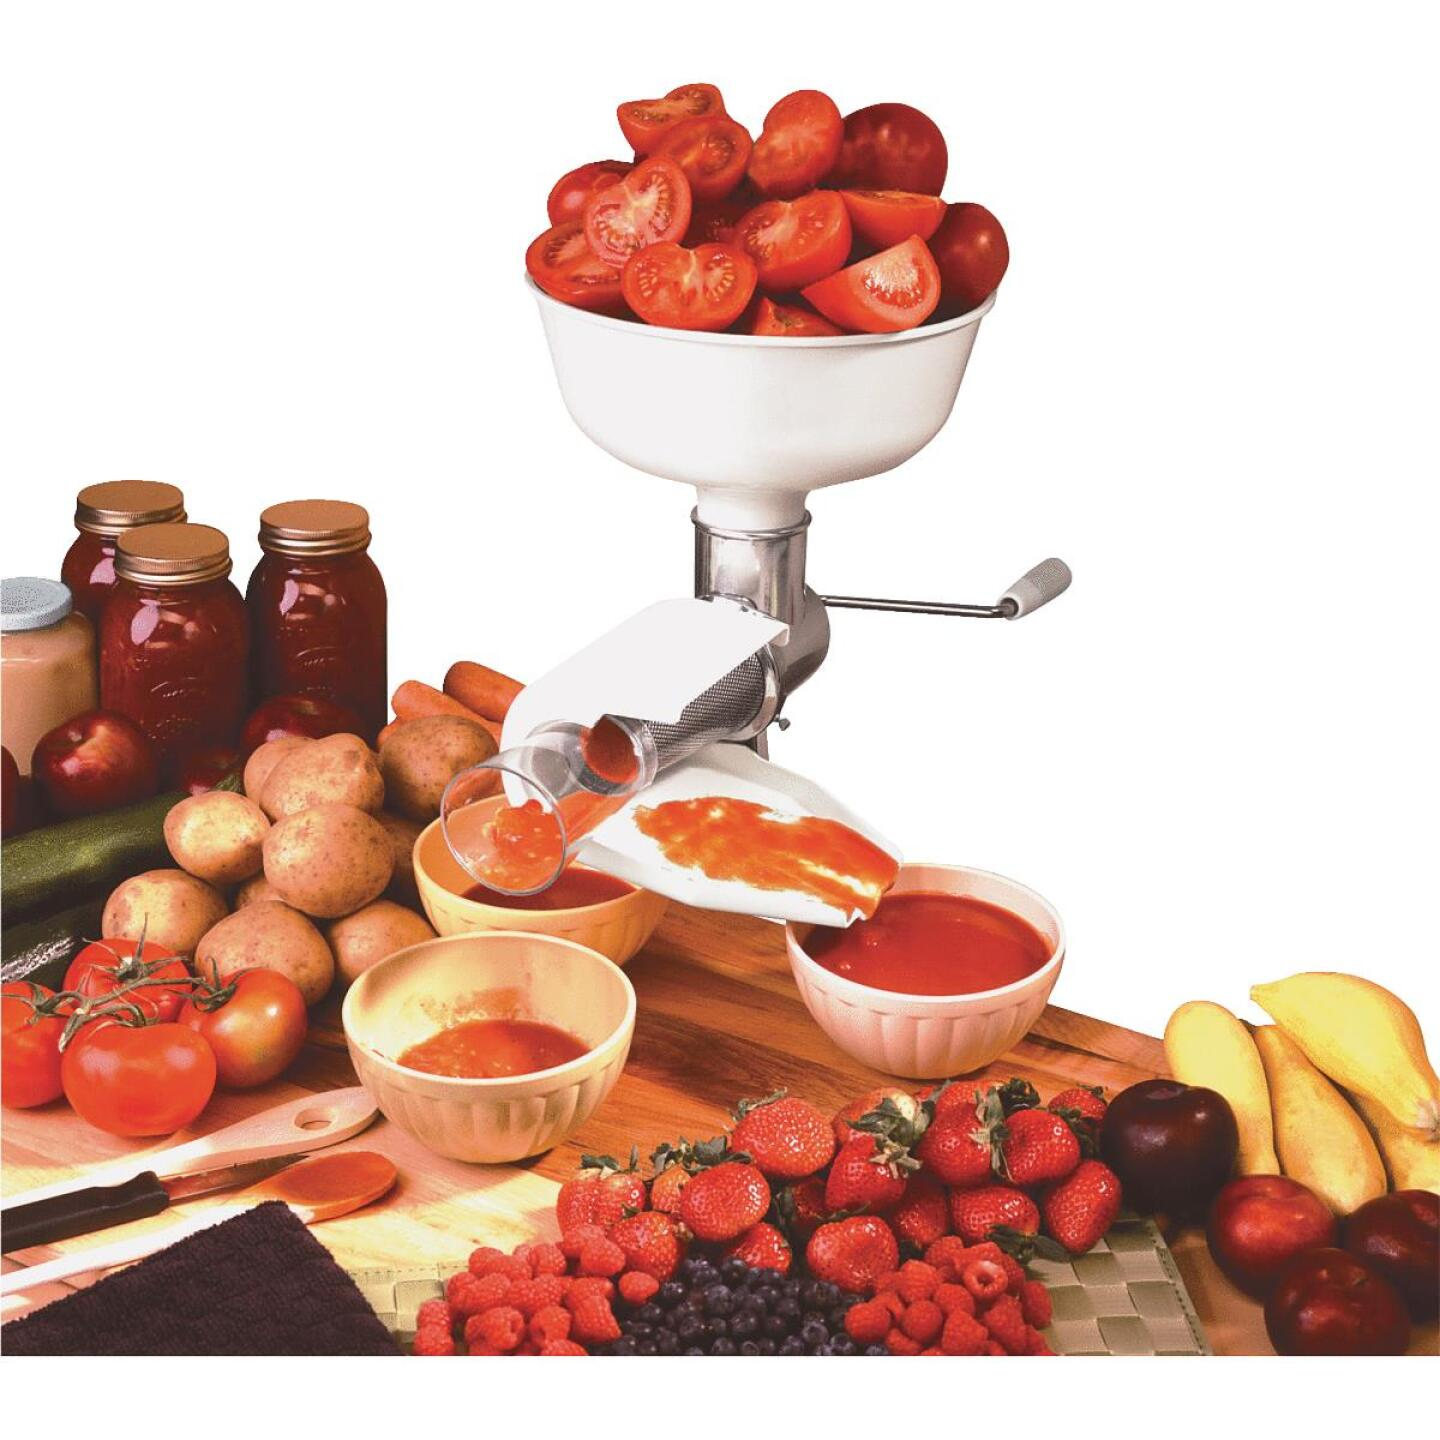 Sauce Master 6 In. x 3.5 In. Vegetable & Fruit Strainer - Salsa Screen Image 3